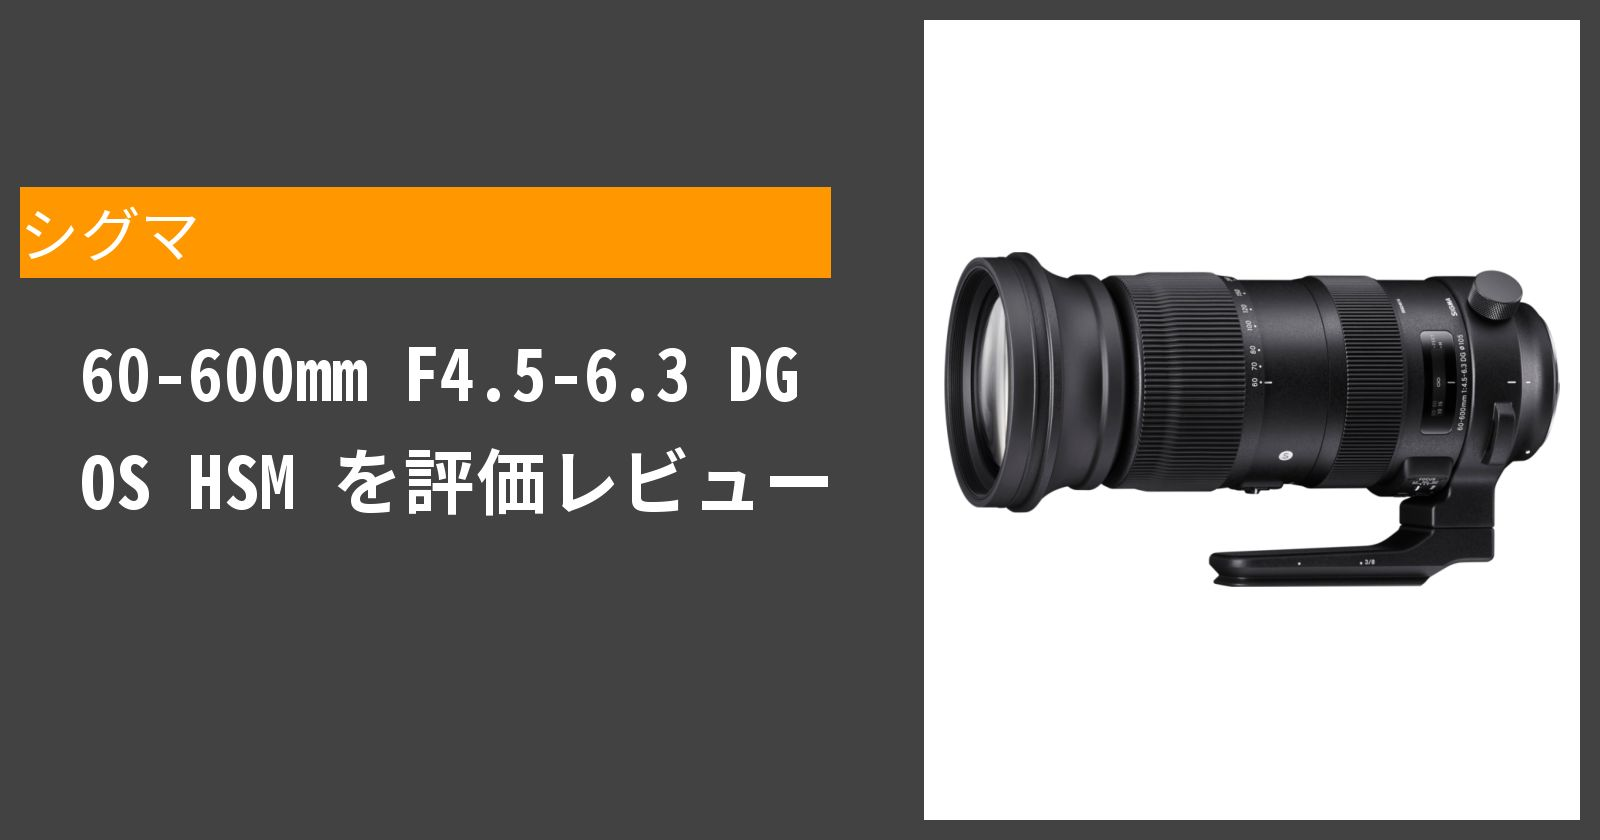 60-600mm F4.5-6.3 DG OS HSMを徹底評価